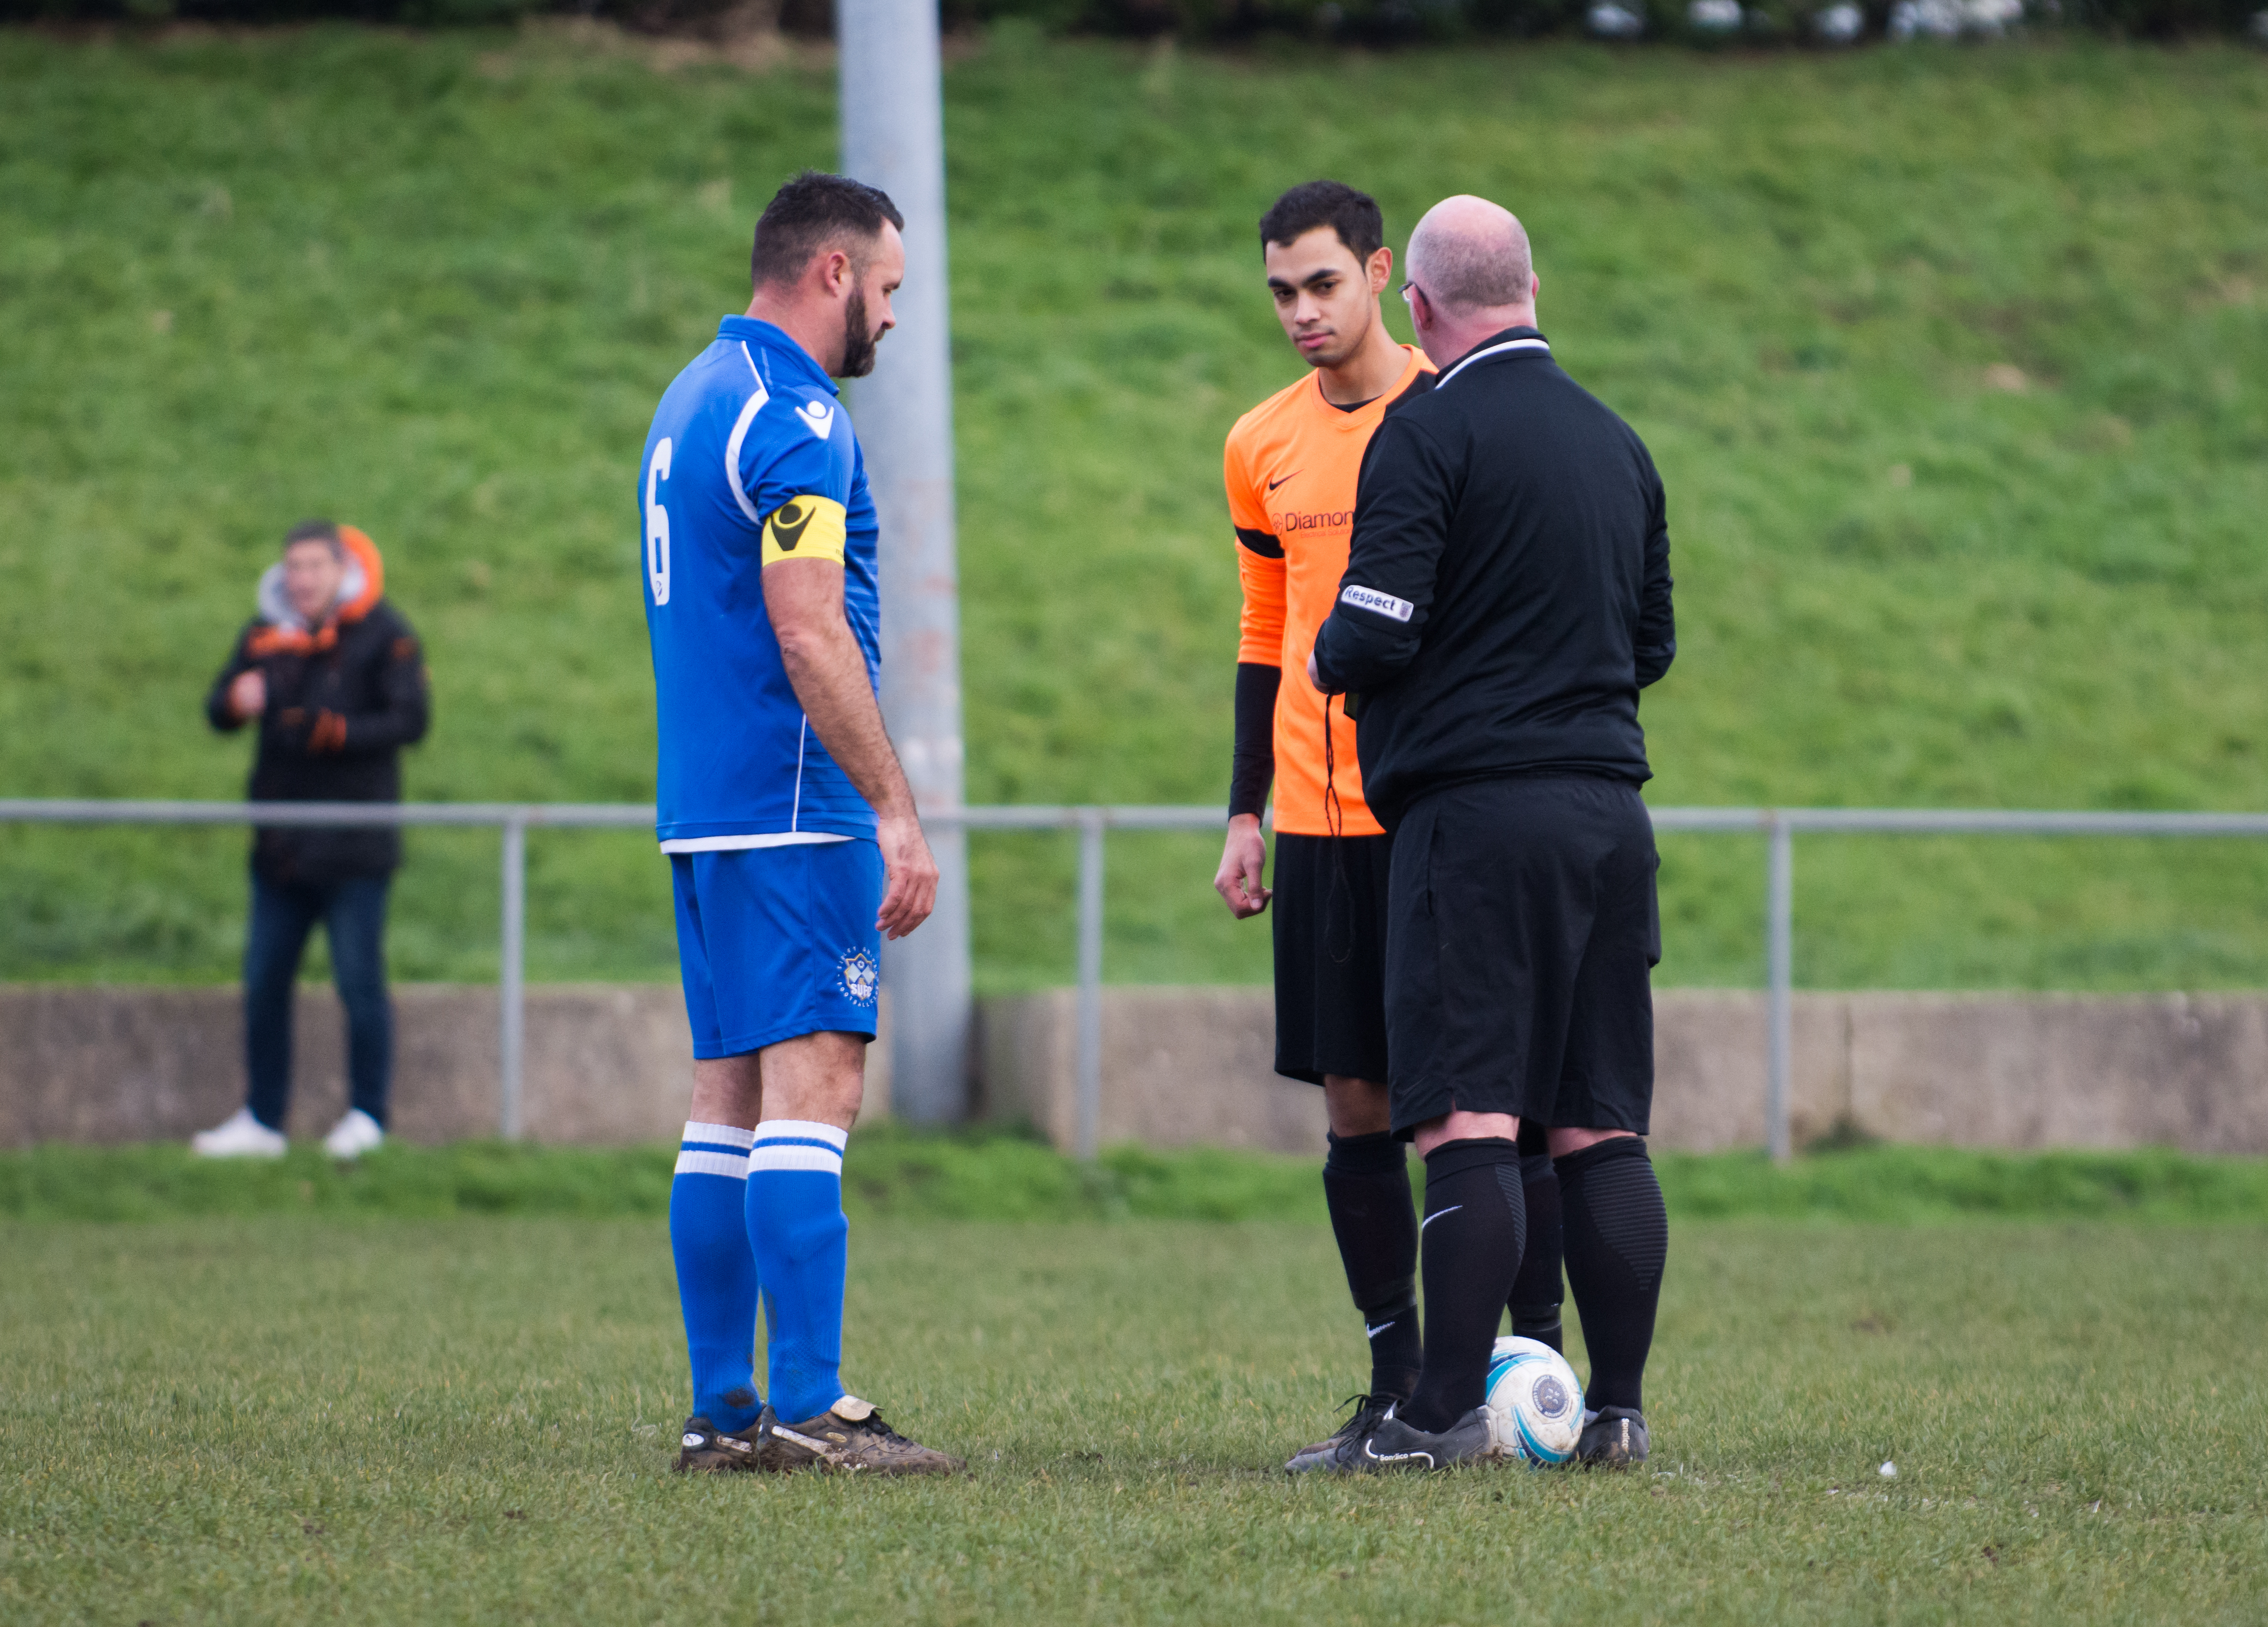 Mile Oak Res vs Sidley United 09.12.17 01